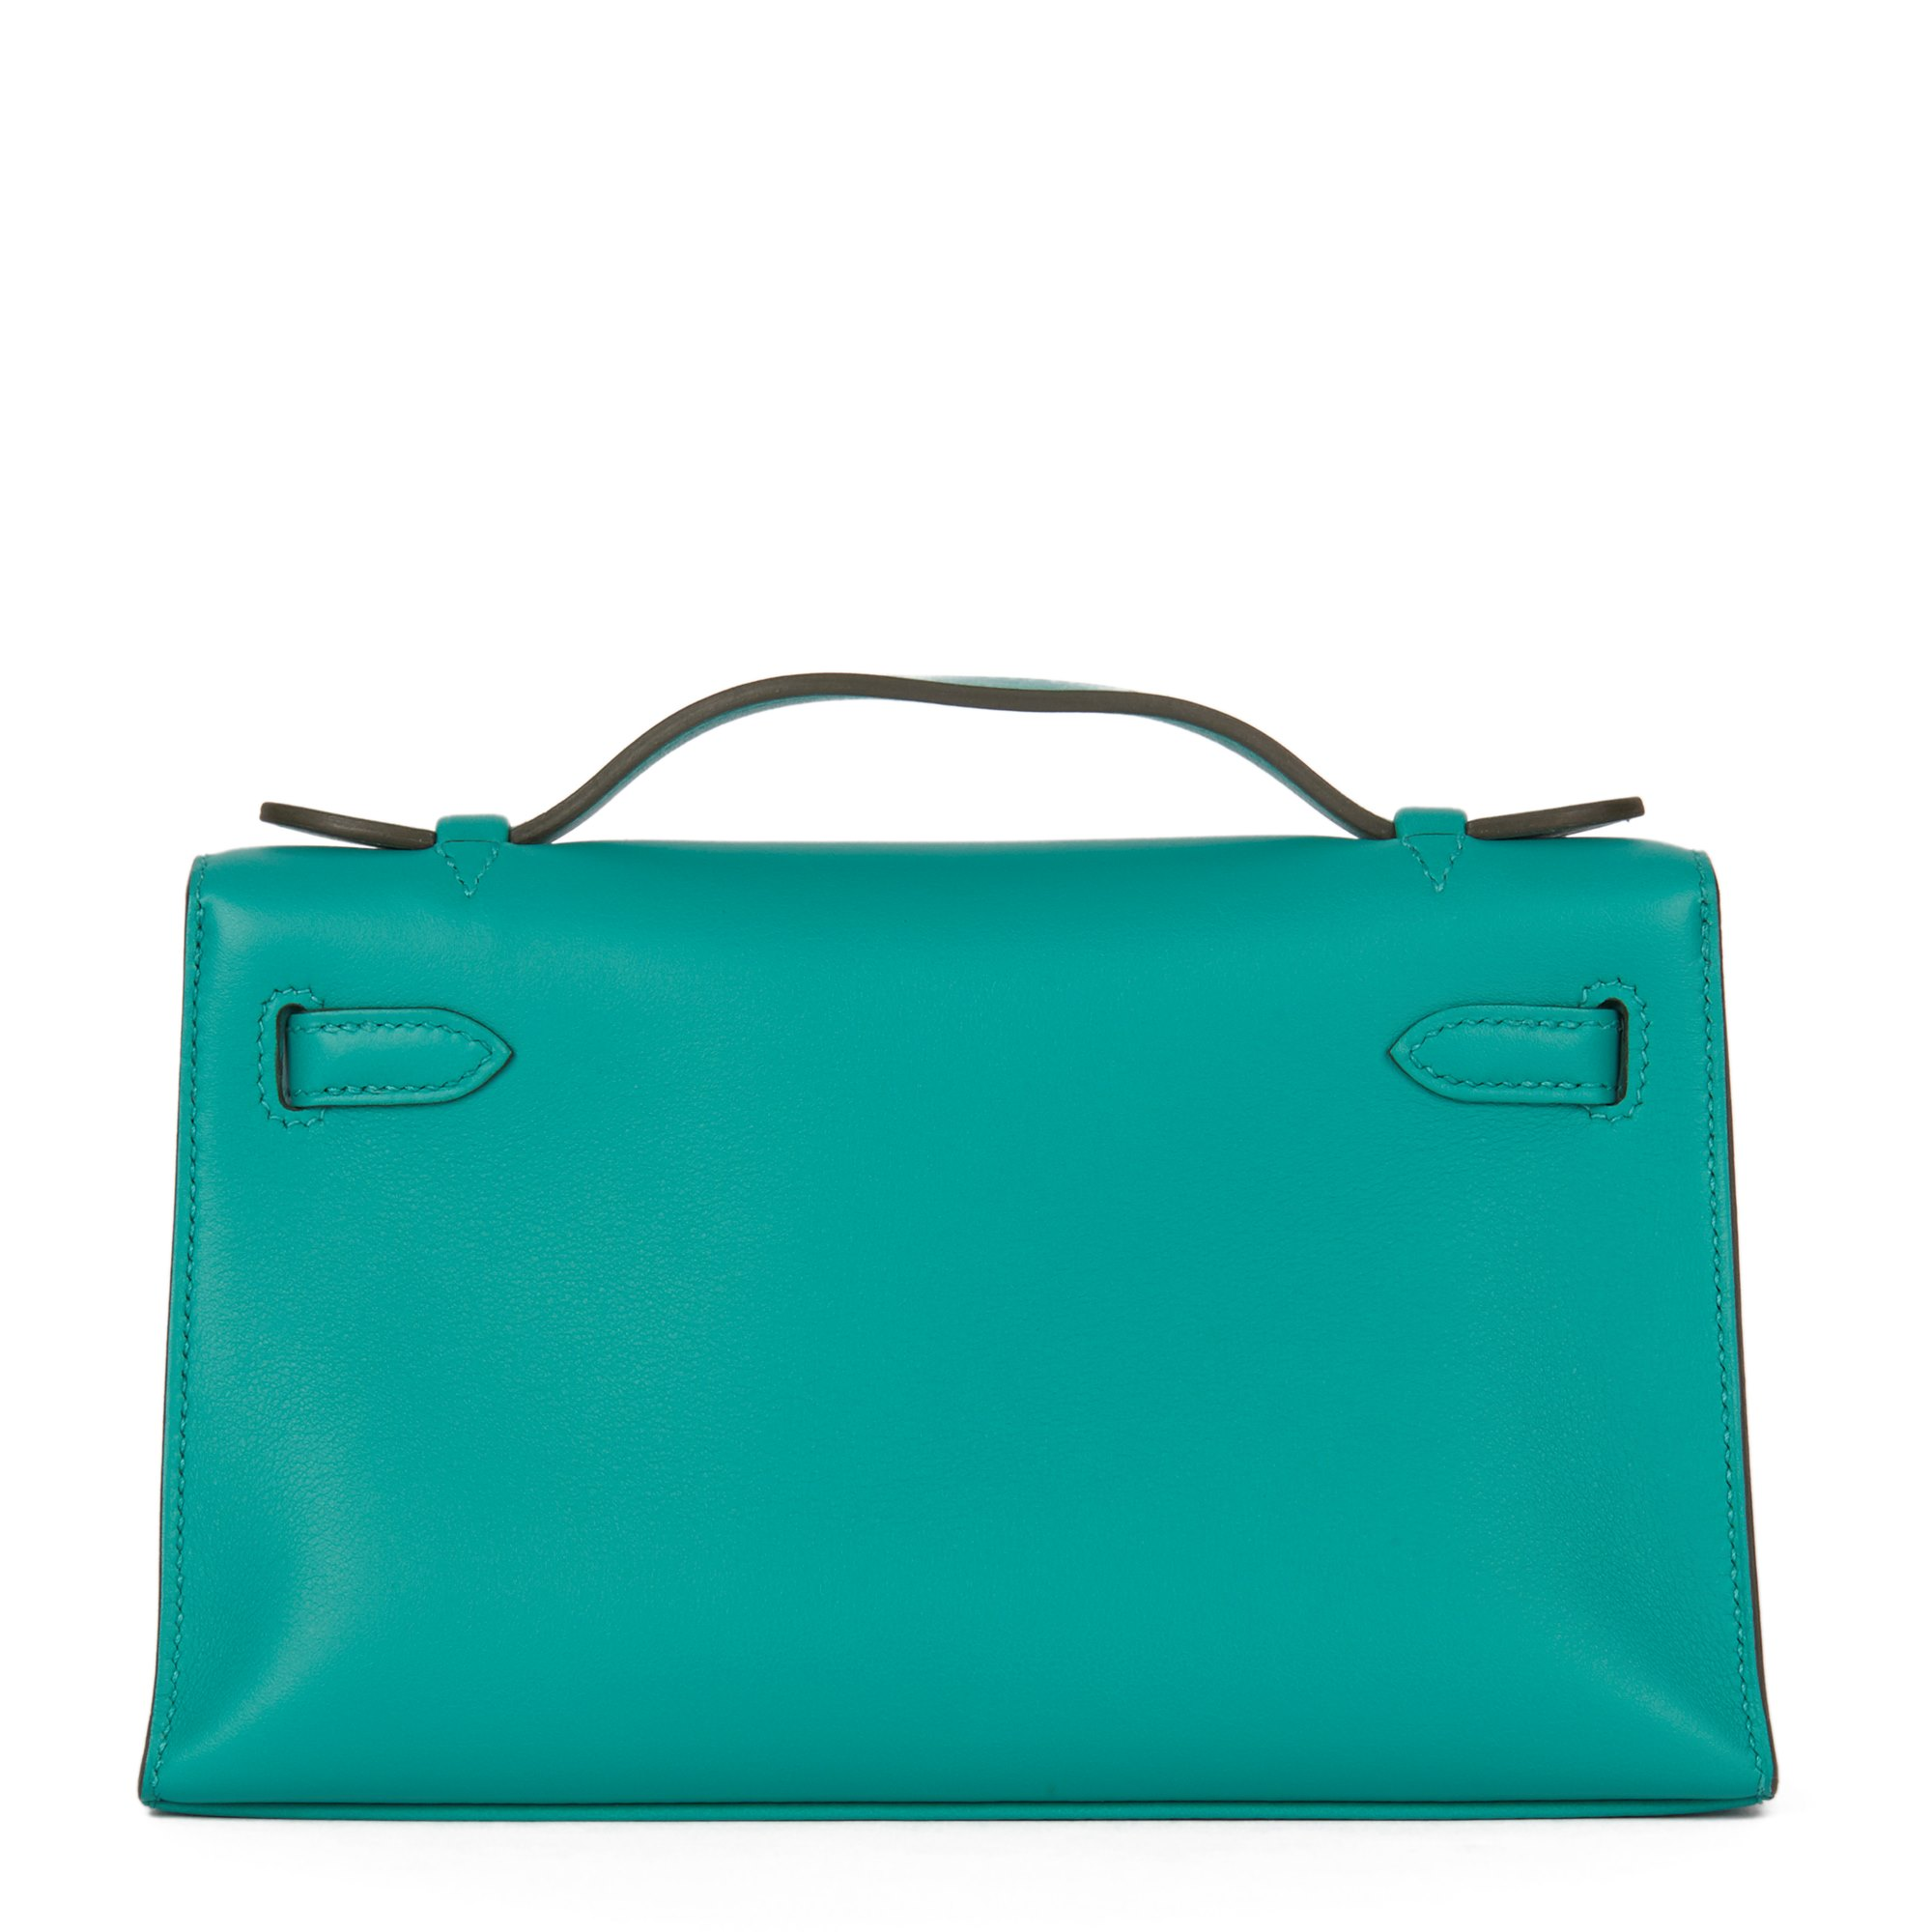 Hermès Vert Verone Swift Leather Kelly Pochette